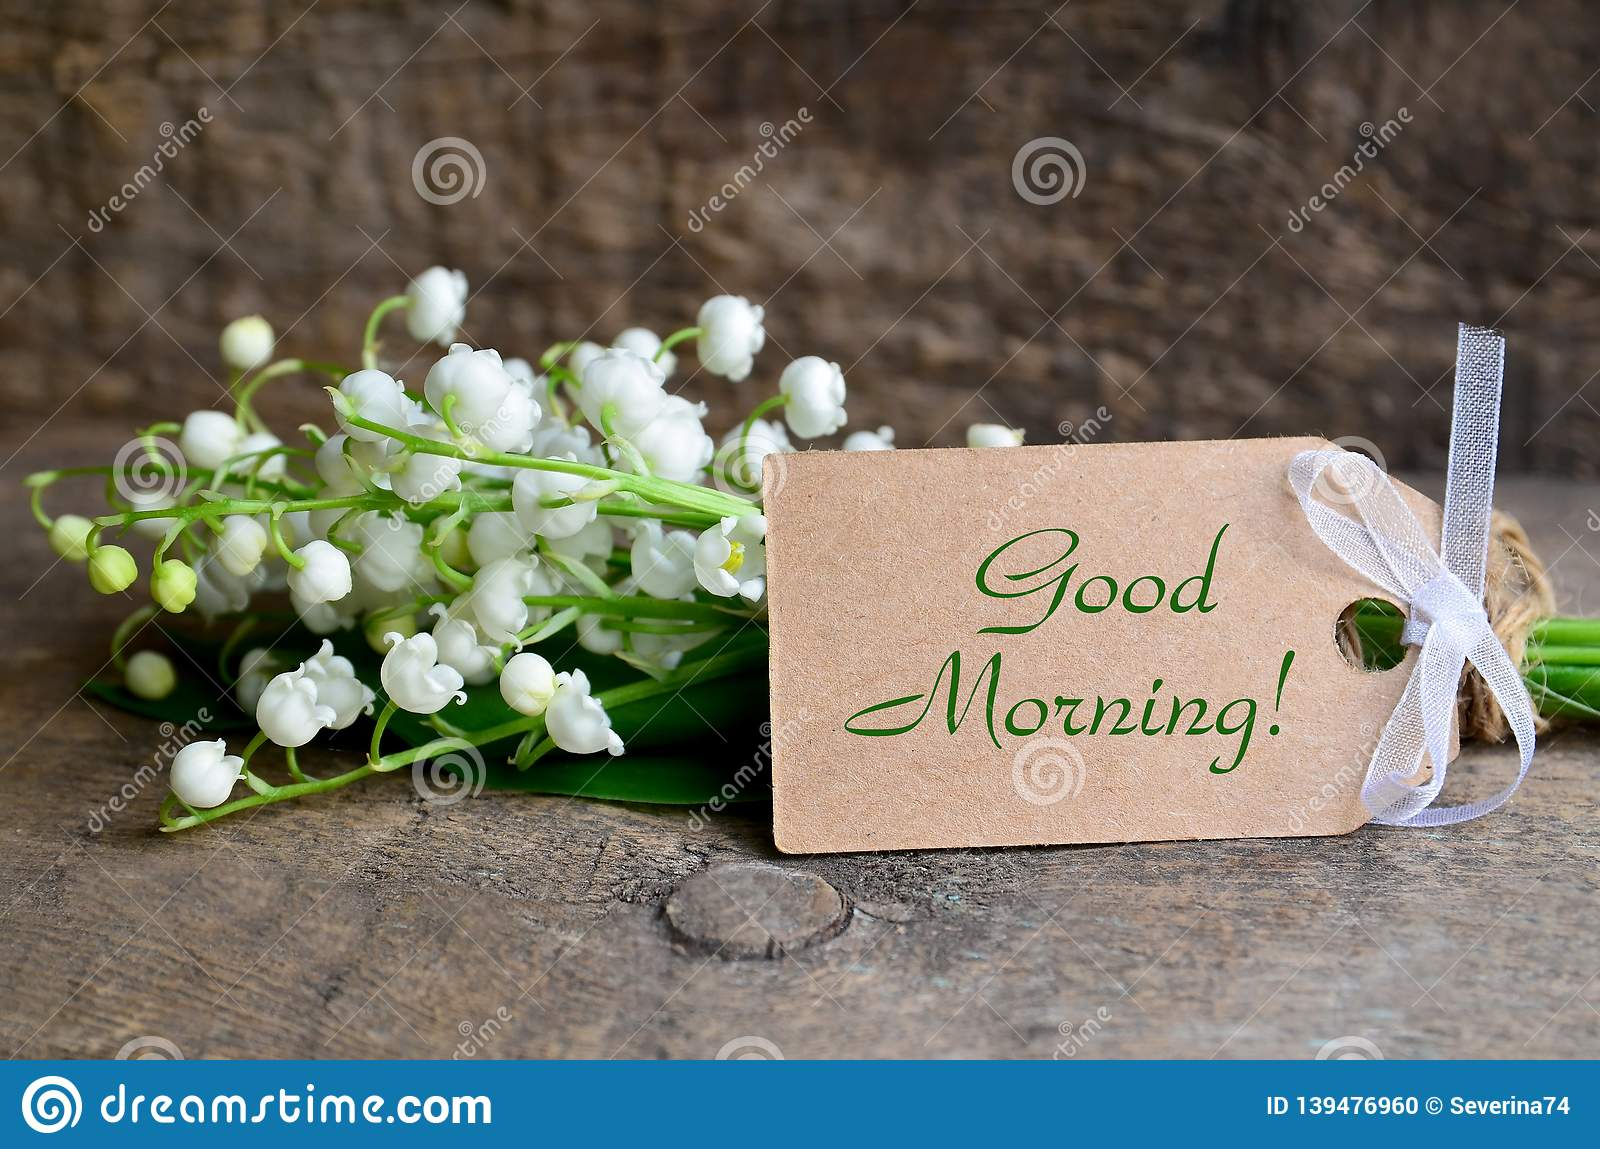 Bouquet Of Fresh Lily Of The Valley Flowers And Tag Card With A Good Morning Inscription On Old Wooden Table Stock Photo Image Of Bouquet Lifestyle 139476960